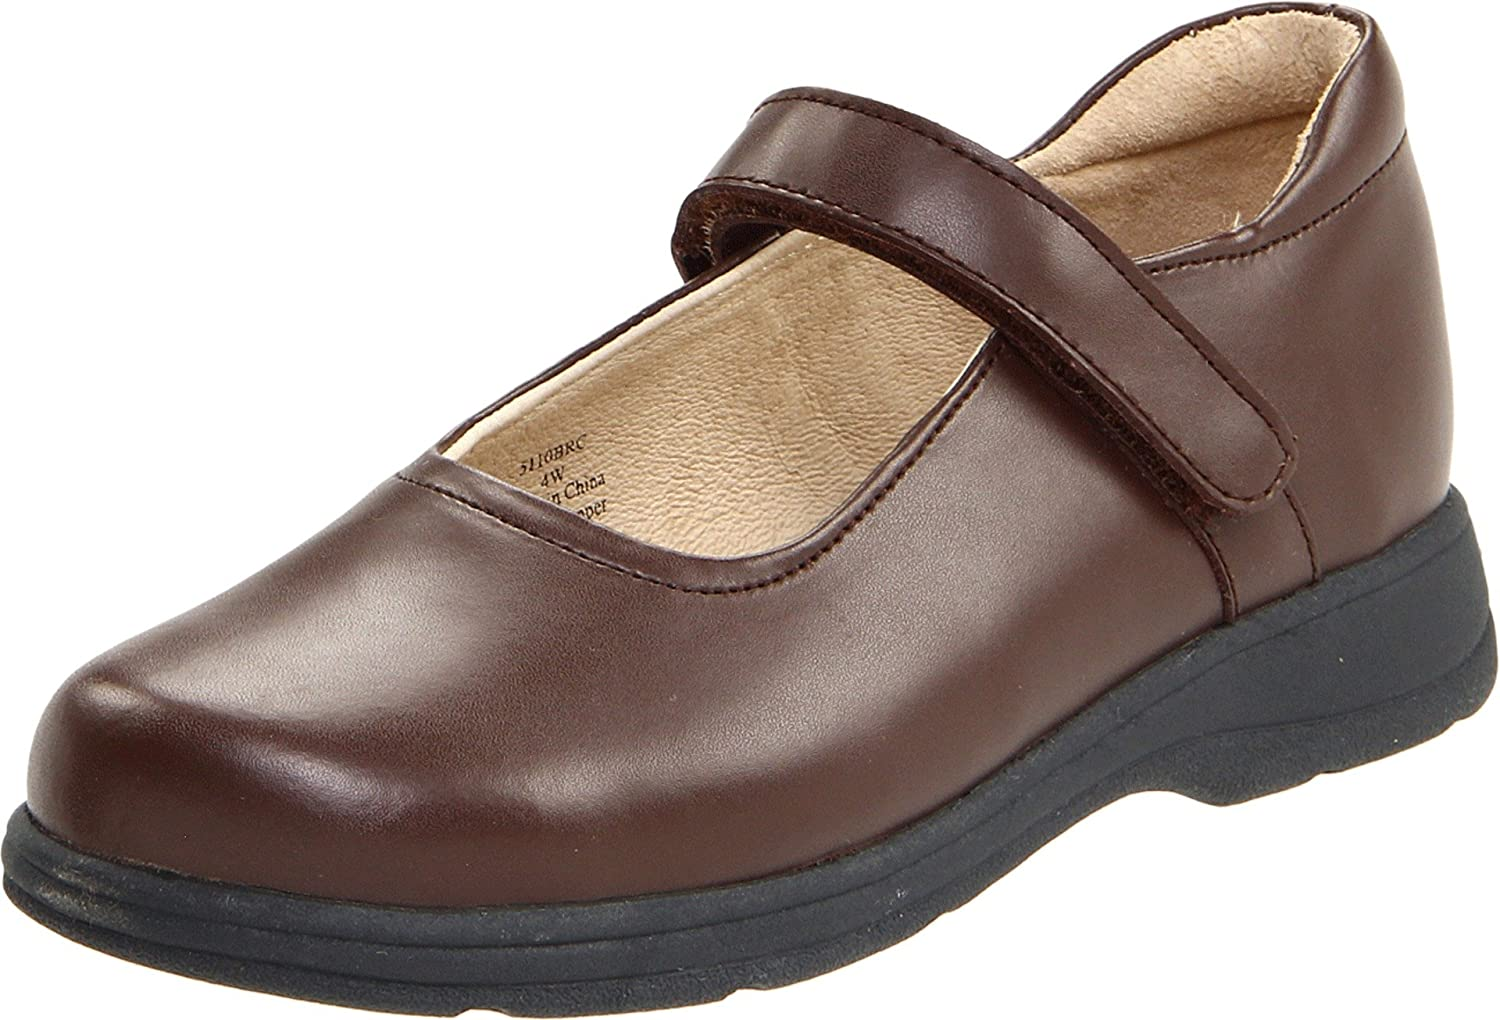 School Issue Prodigy 5100 Mary Jane Uniform Shoe (Toddler/Little Kid/Big Kid) B0058T4CWK 1 M US Little Kid|Brown Brc